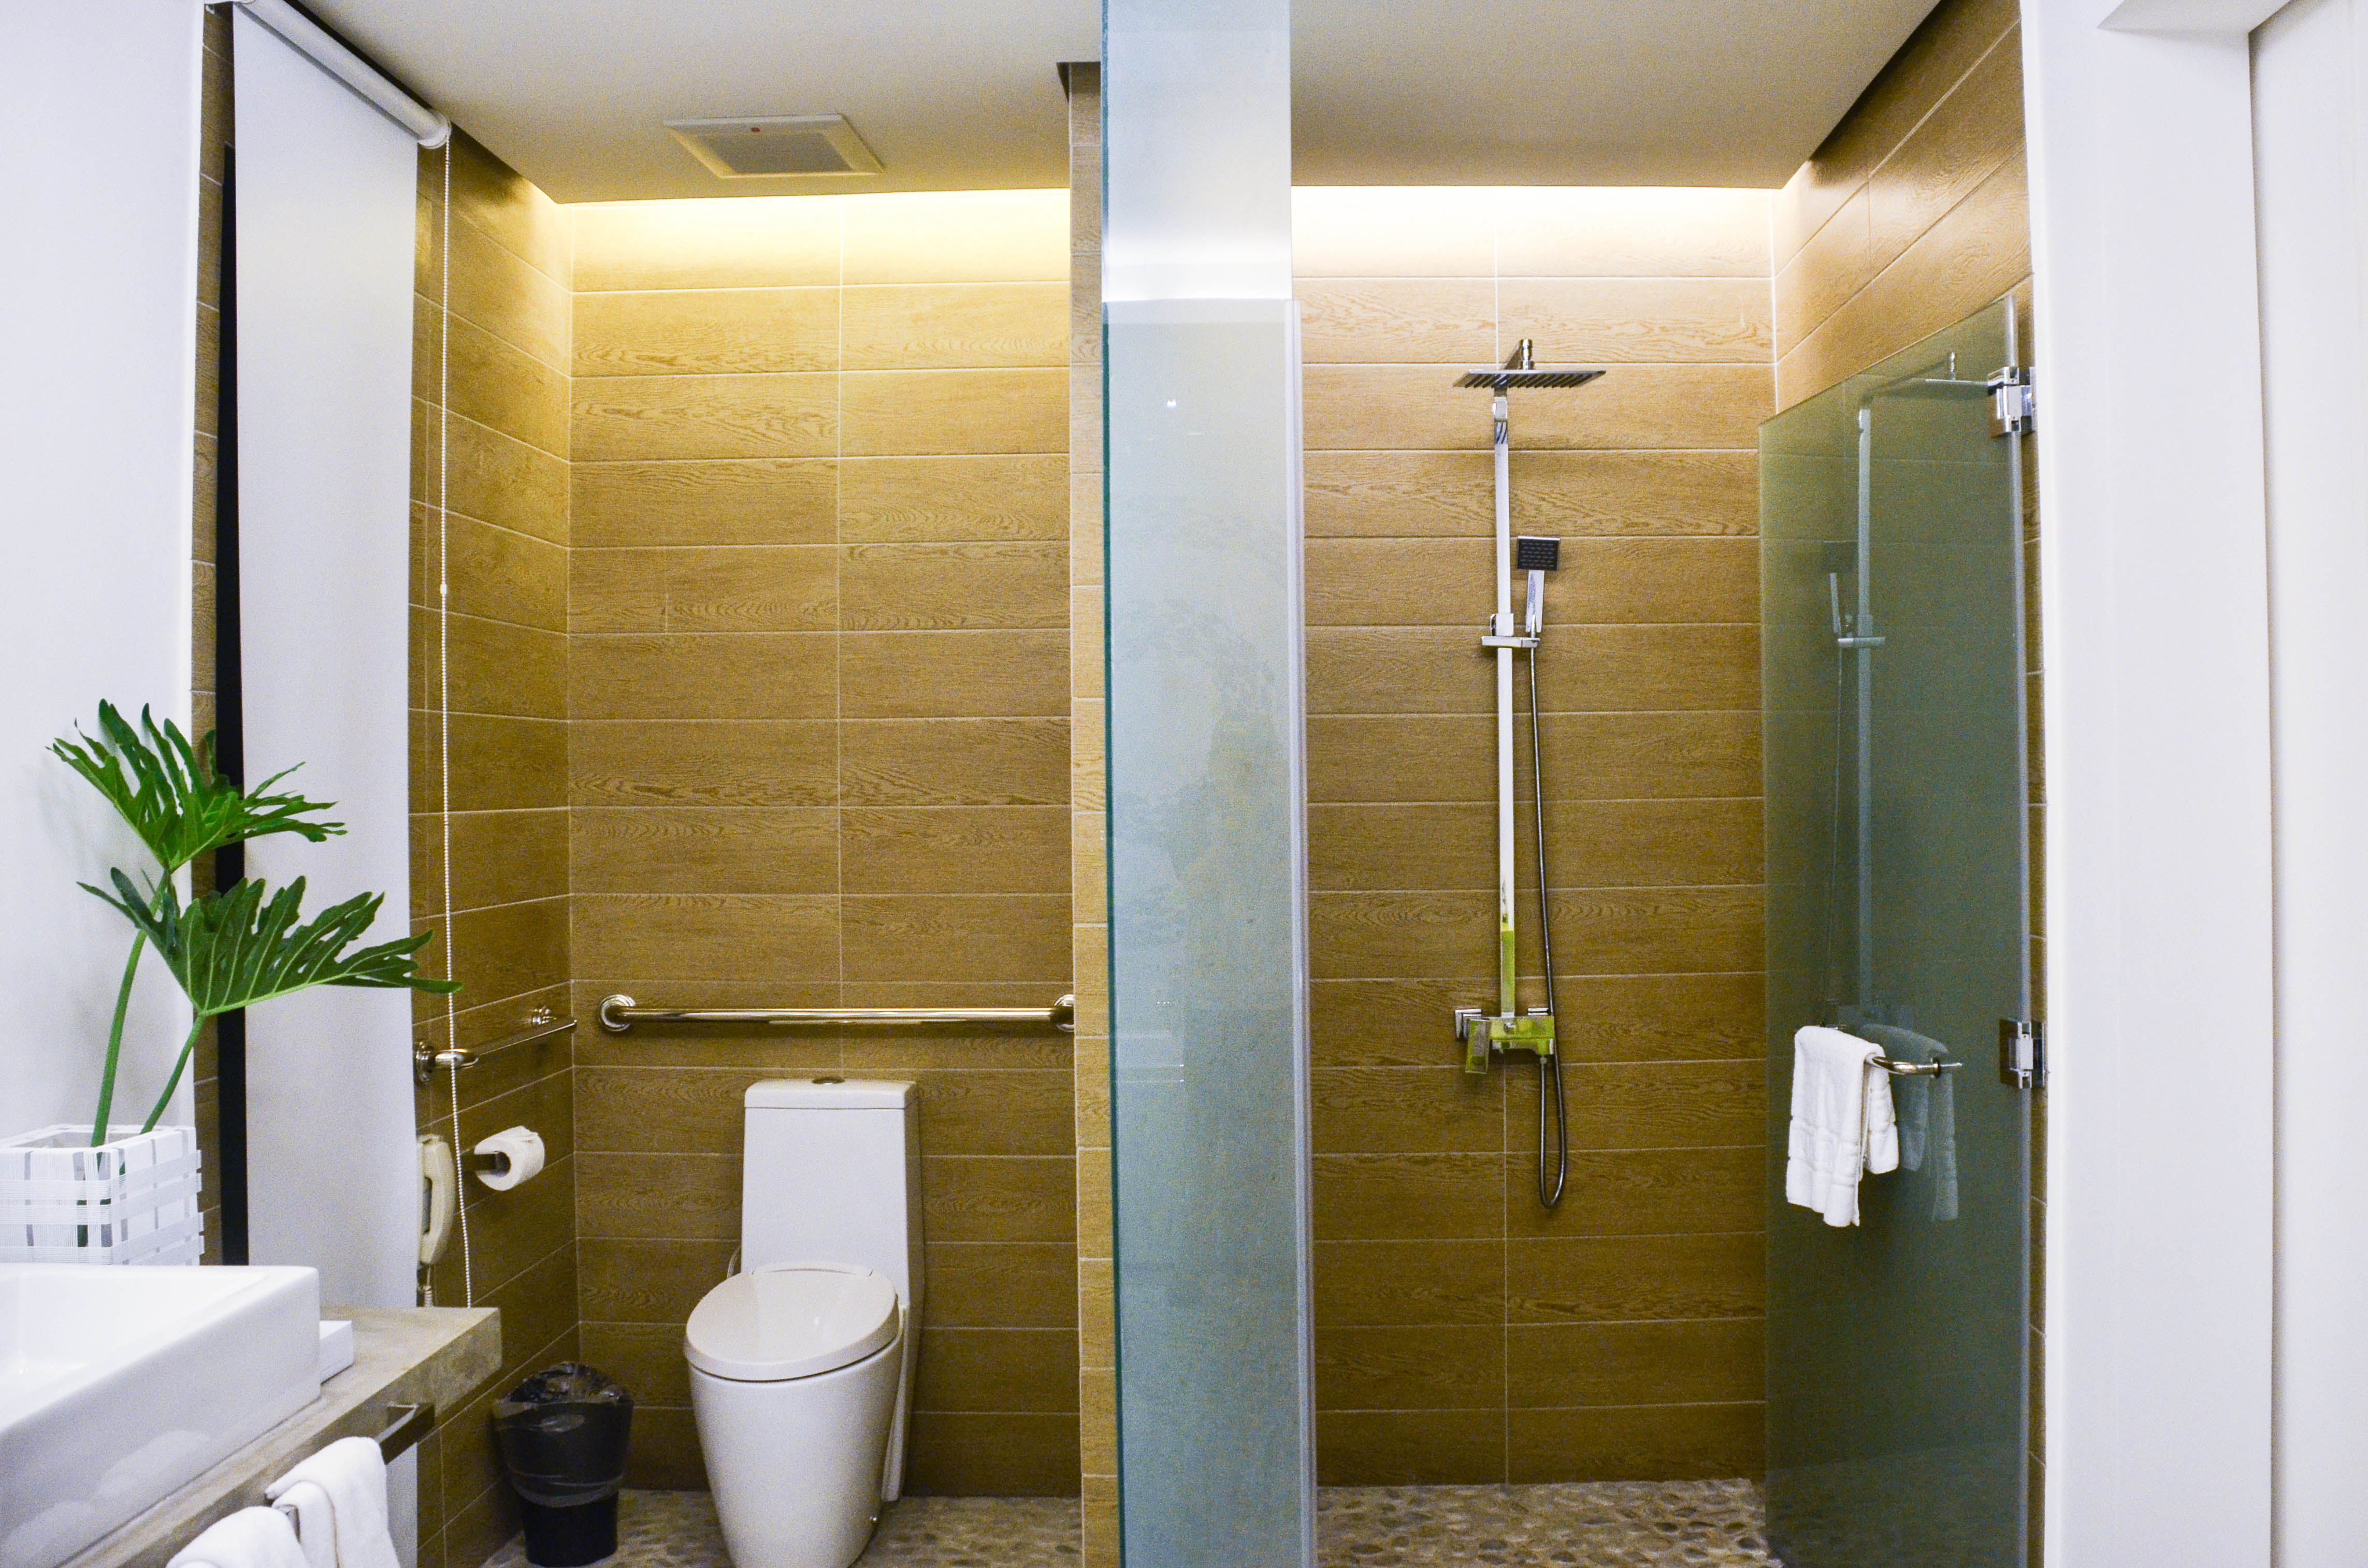 How To Plan A Bathroom Renovation: 8 Steps (with Pictures